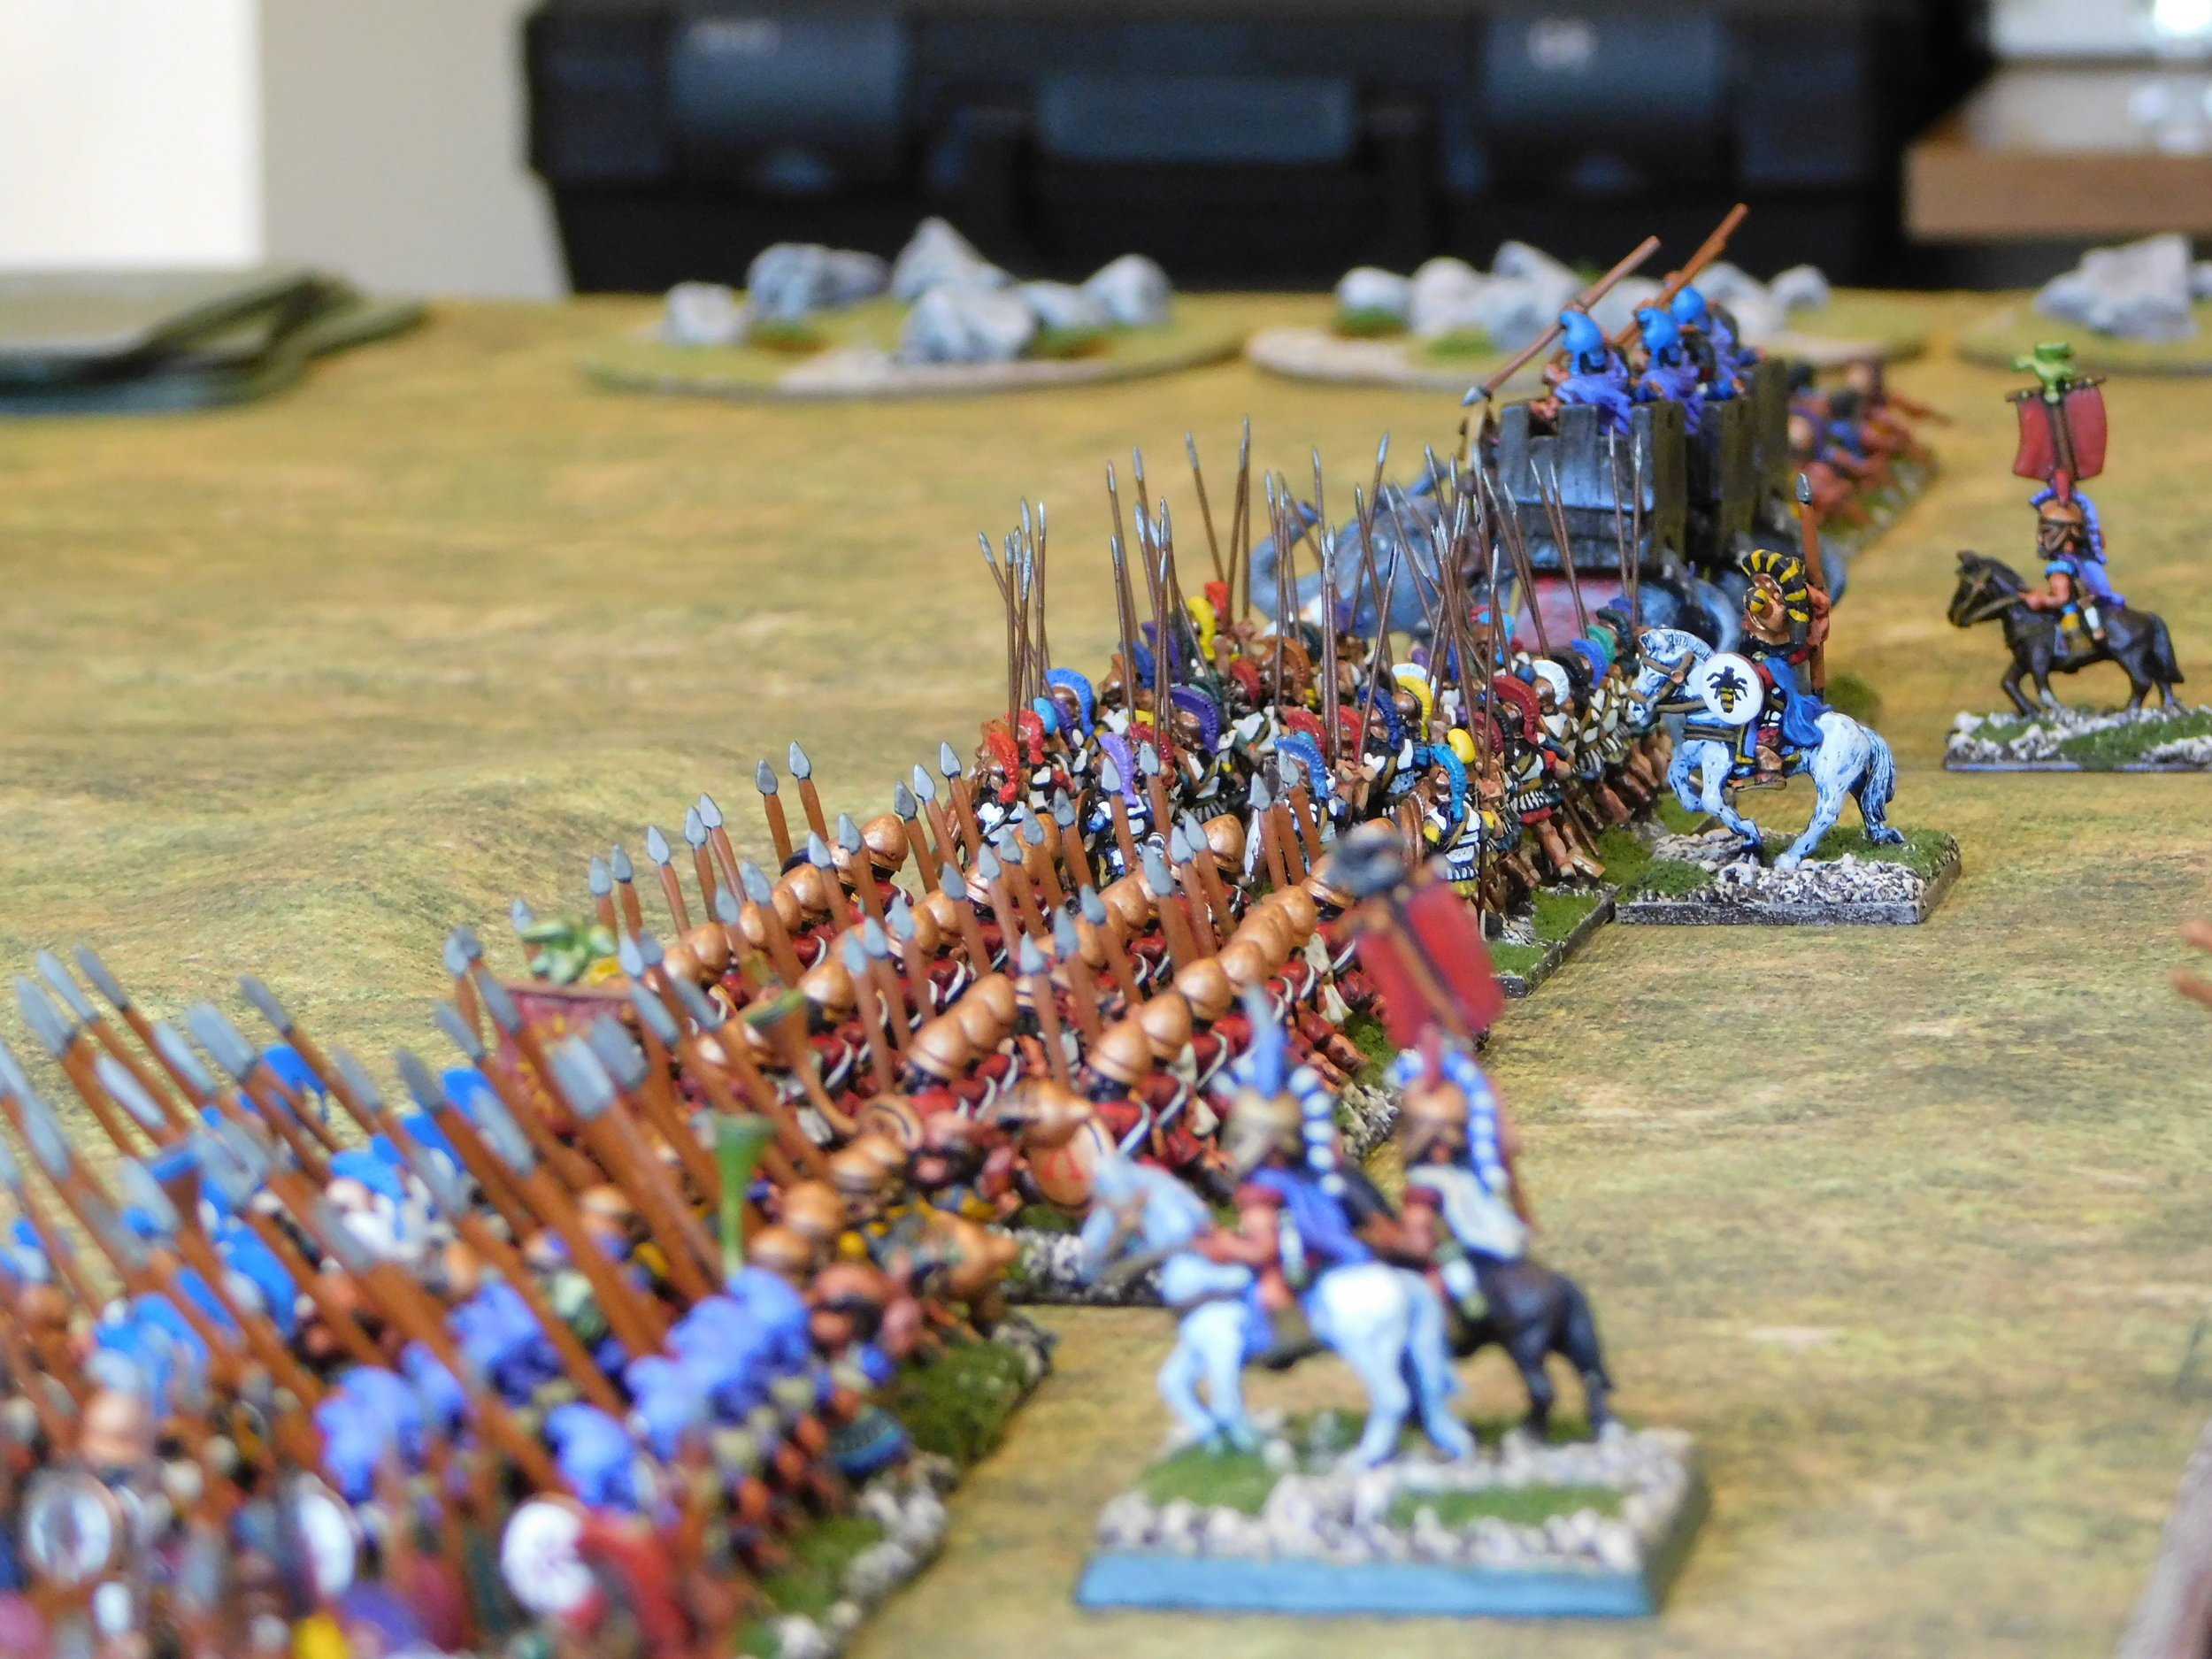 The Pyrrhic Heavy Infantry